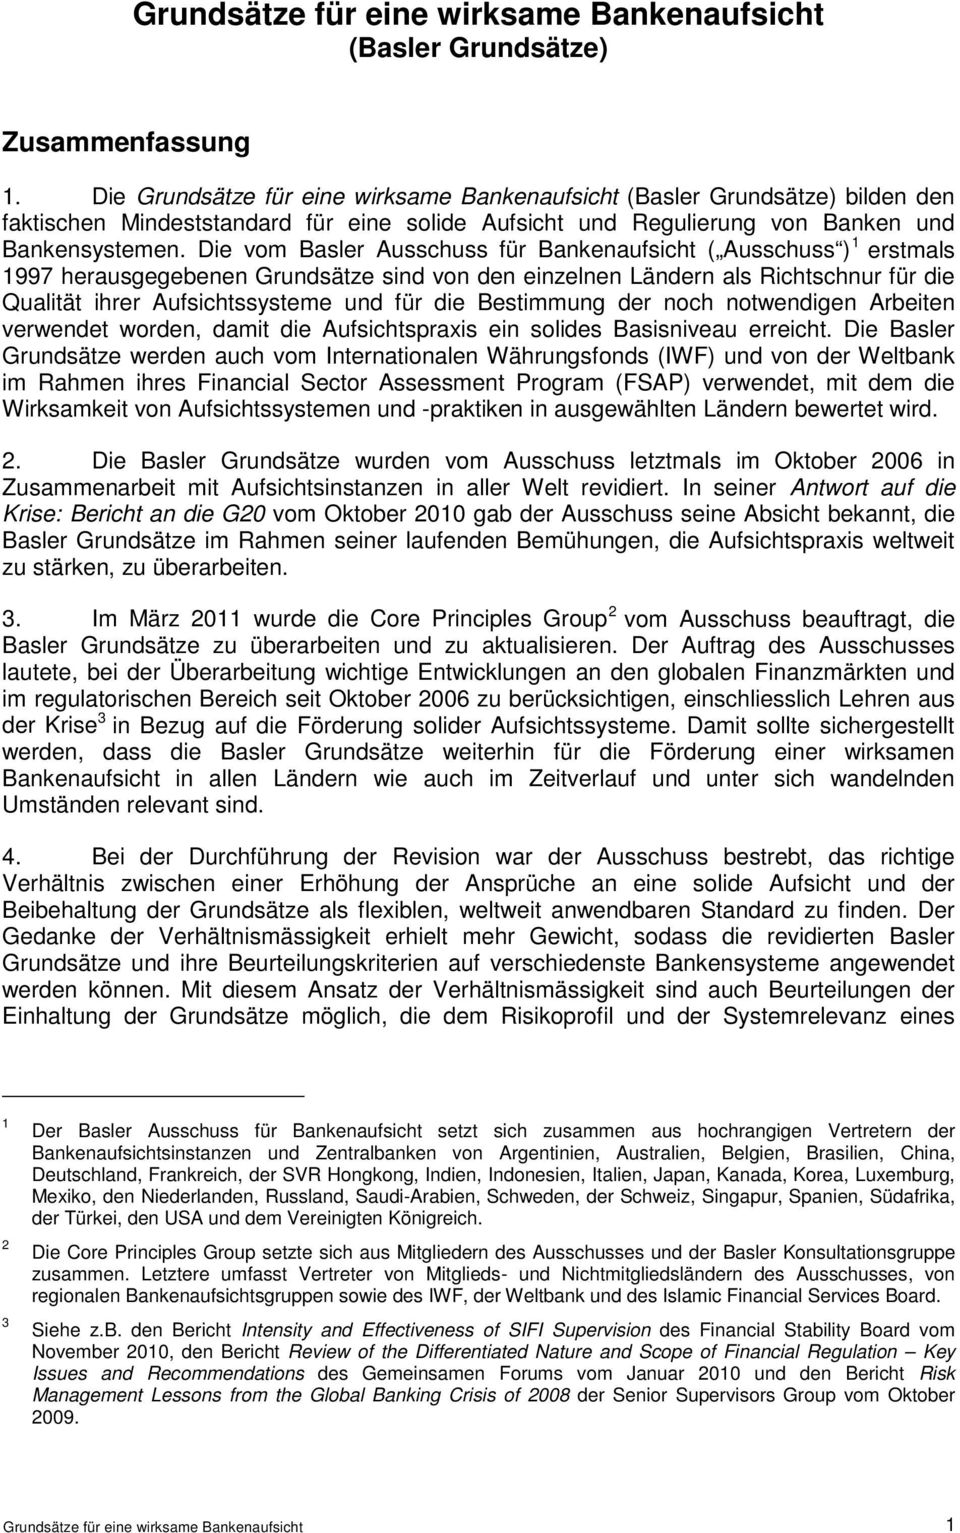 Großartig Unc Optimale Zusammenfassung Bilder - Entry Level Resume ...